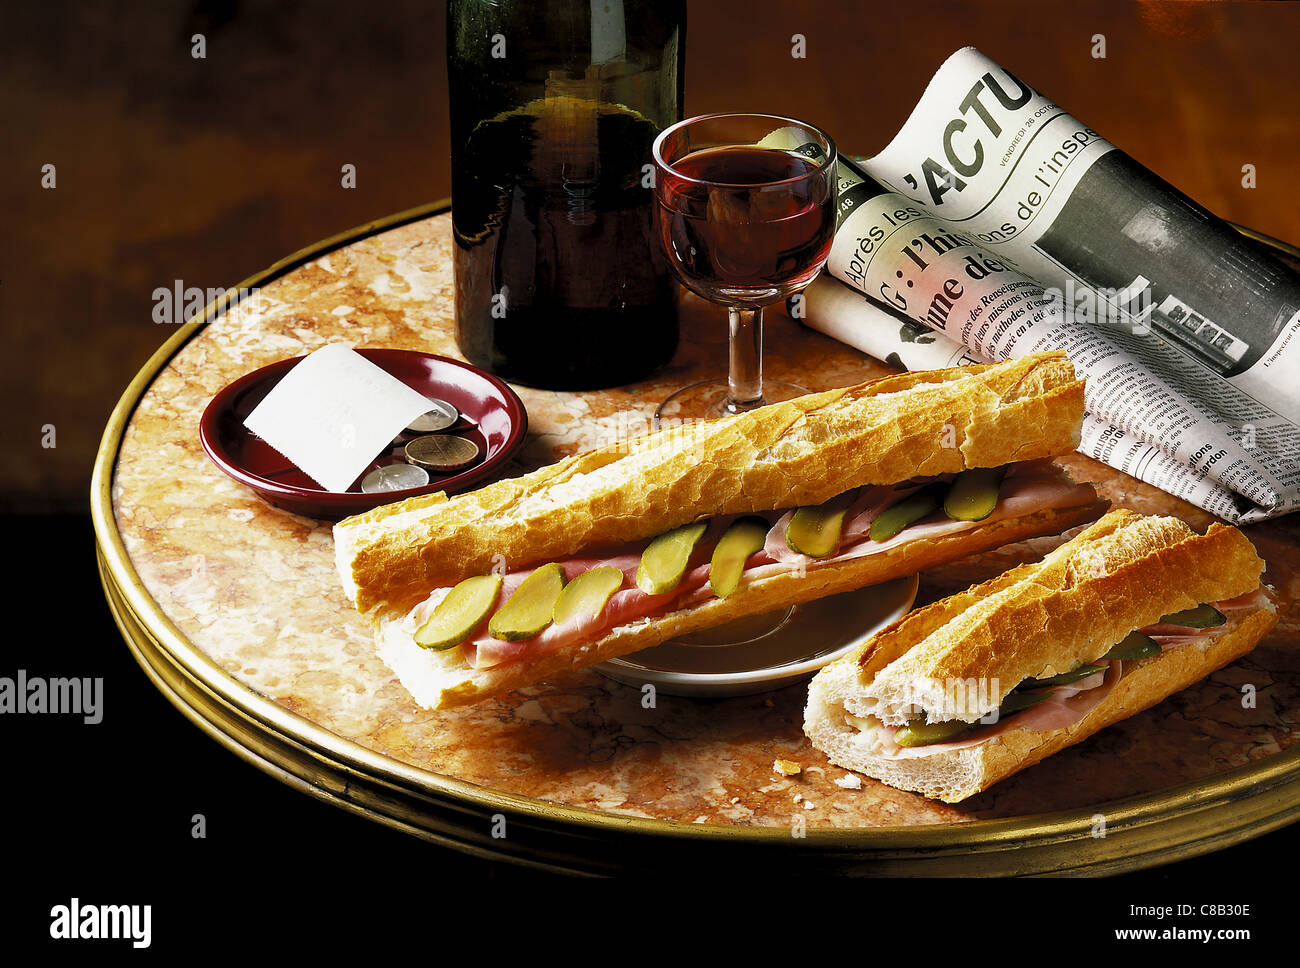 bistrot baguette ham sandwich with red wine - Stock Image